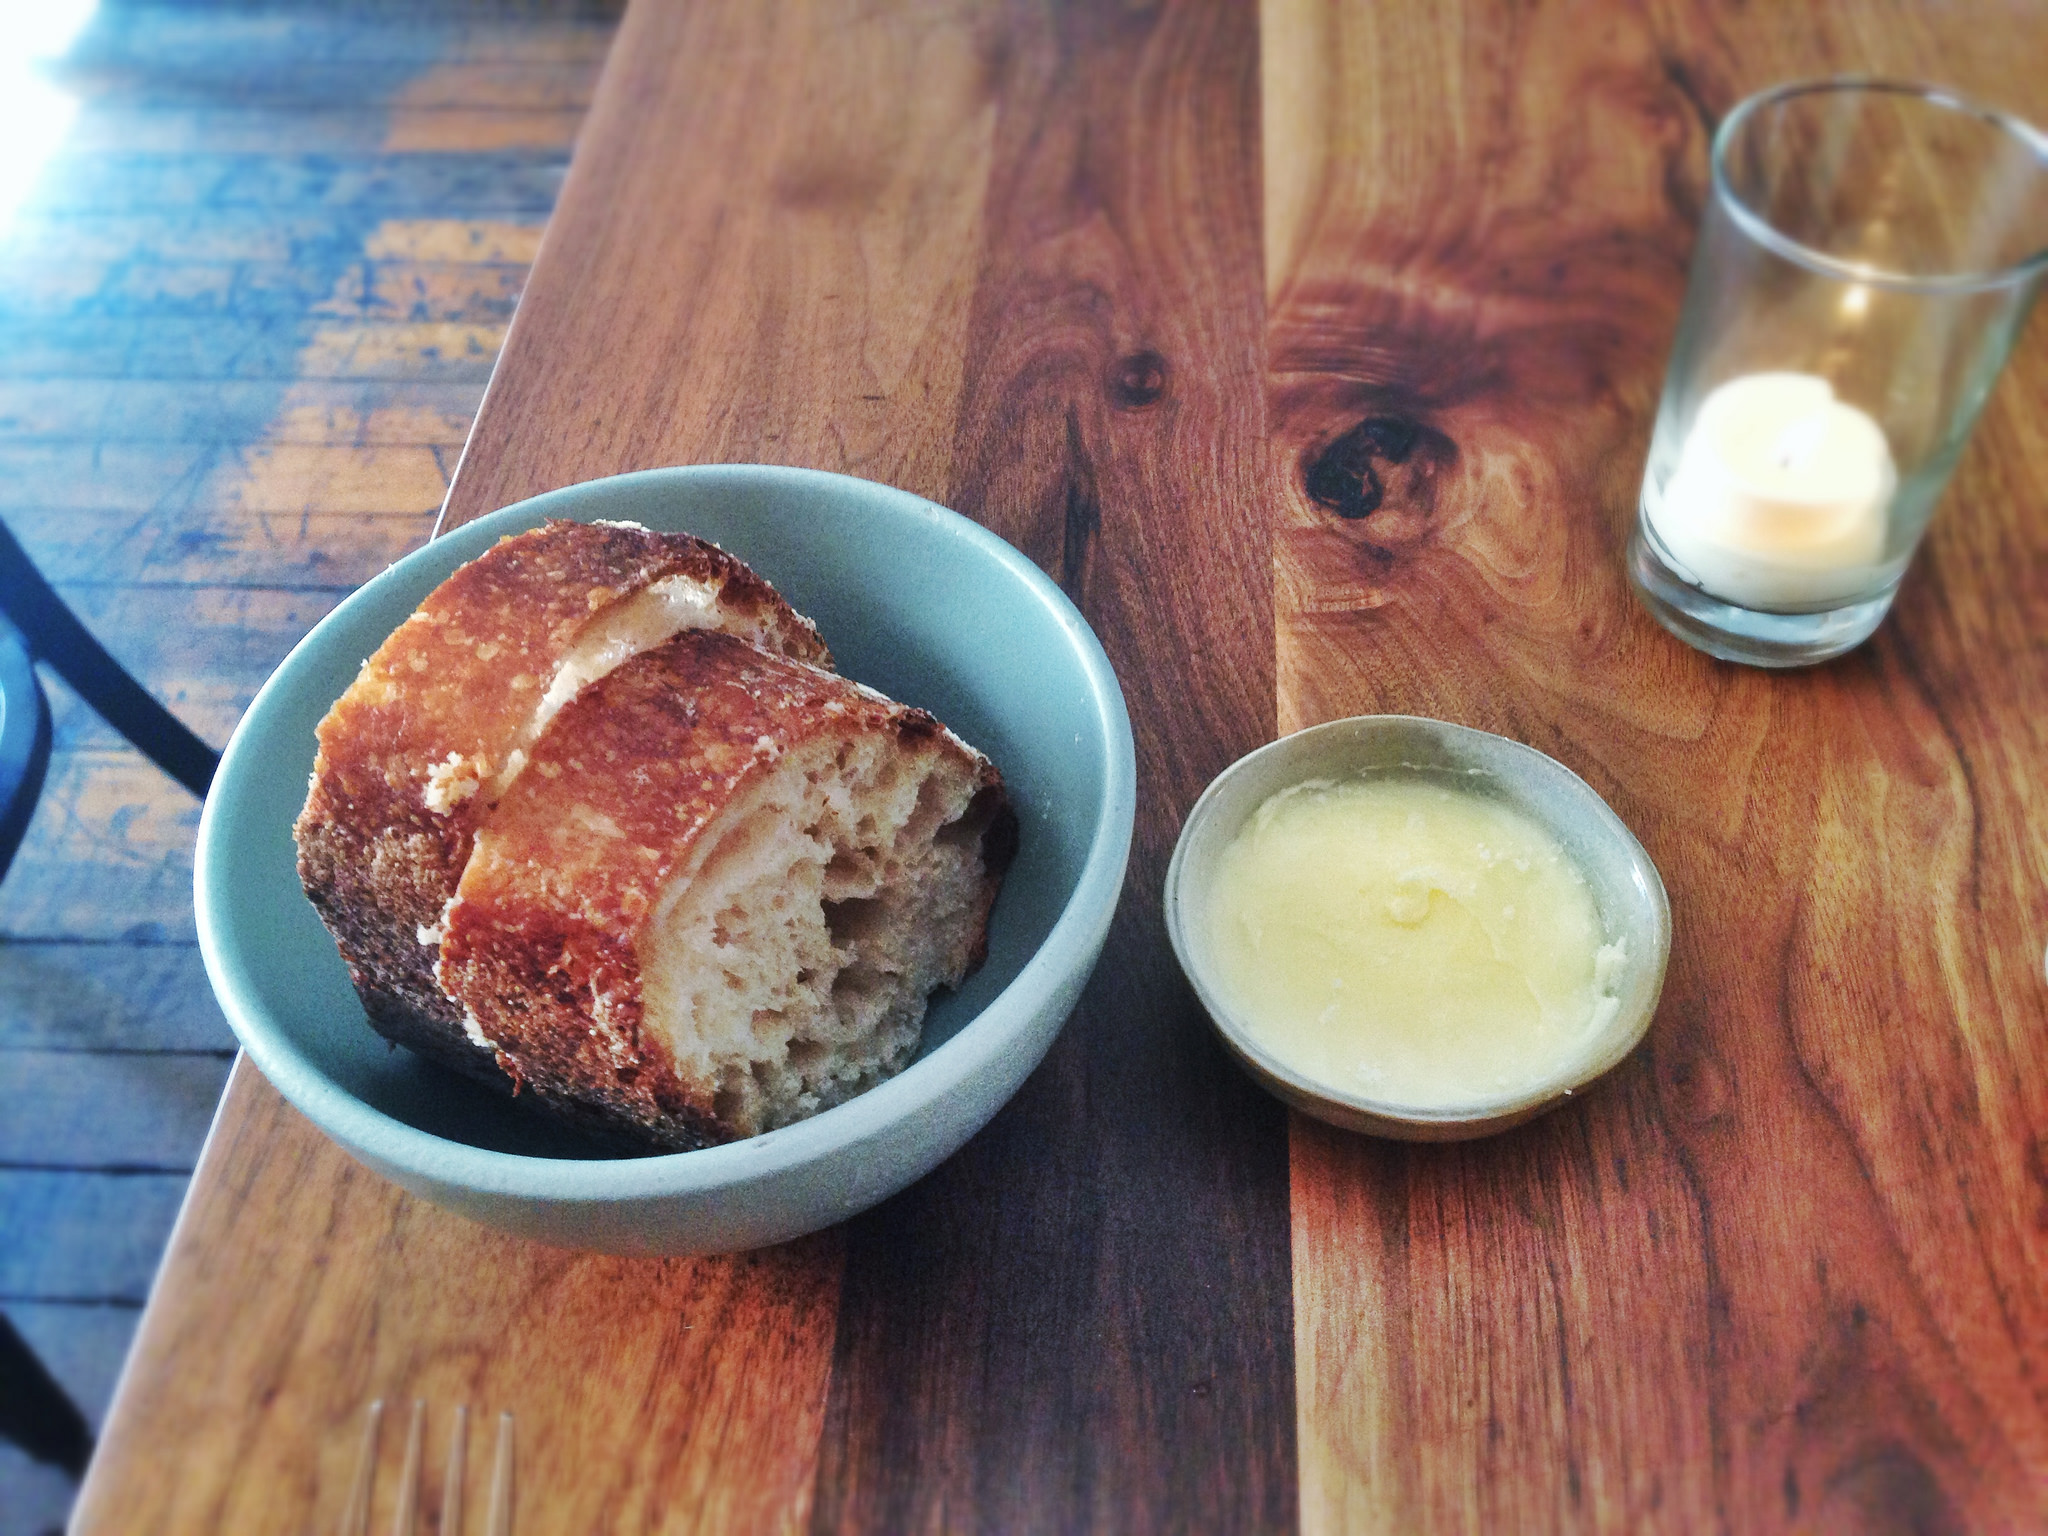 French butter just with a good artisanal baguette tastes incredible, like on these two slices of baguette in a blue bowl next to a dish of butter on a wooden table.